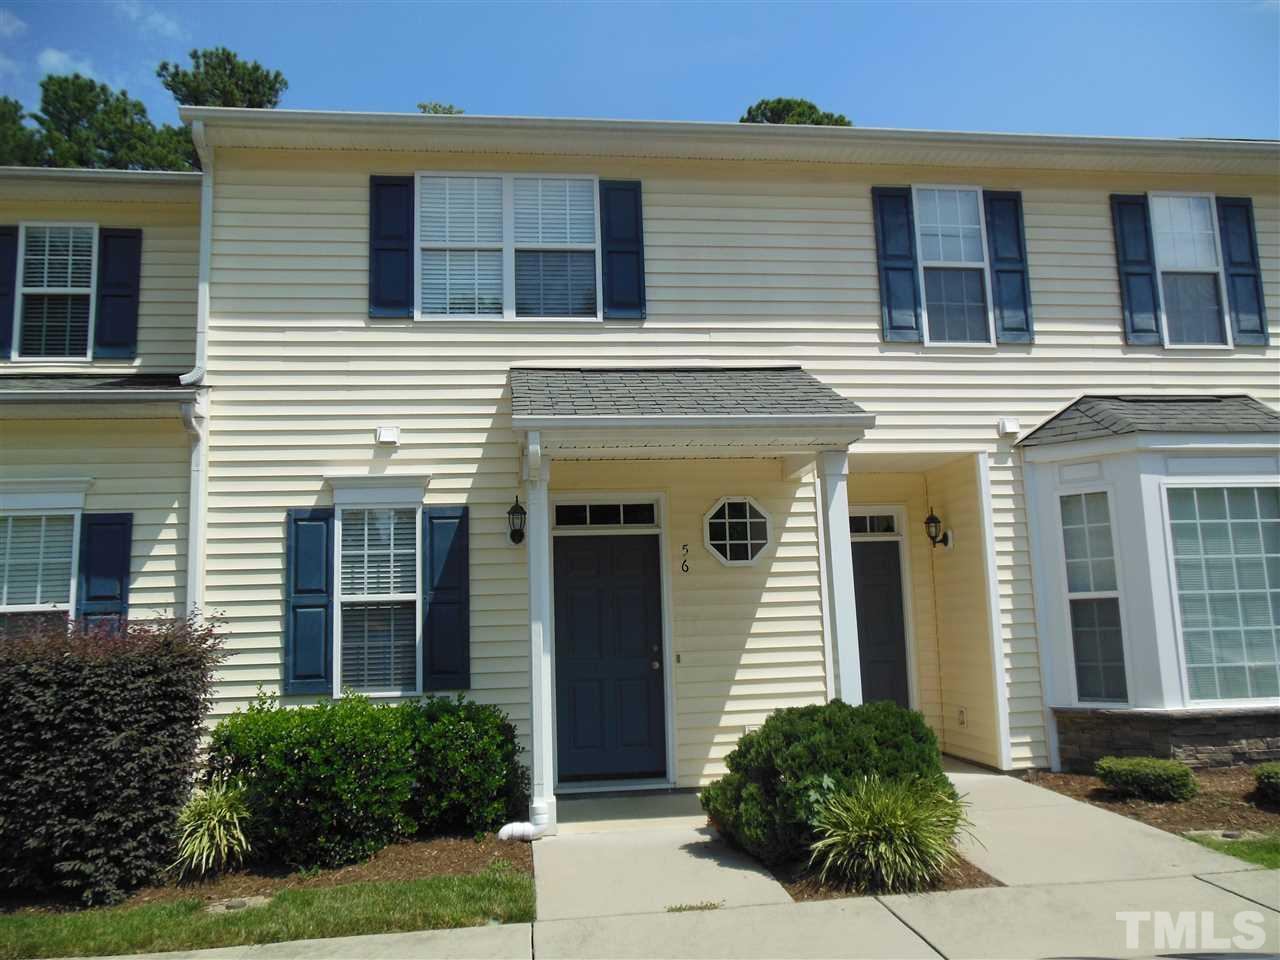 Cute 2BR, 2.5BA town home in Hollymeade. Both bedrooms upstairs. New paint and carpet, ready to go!